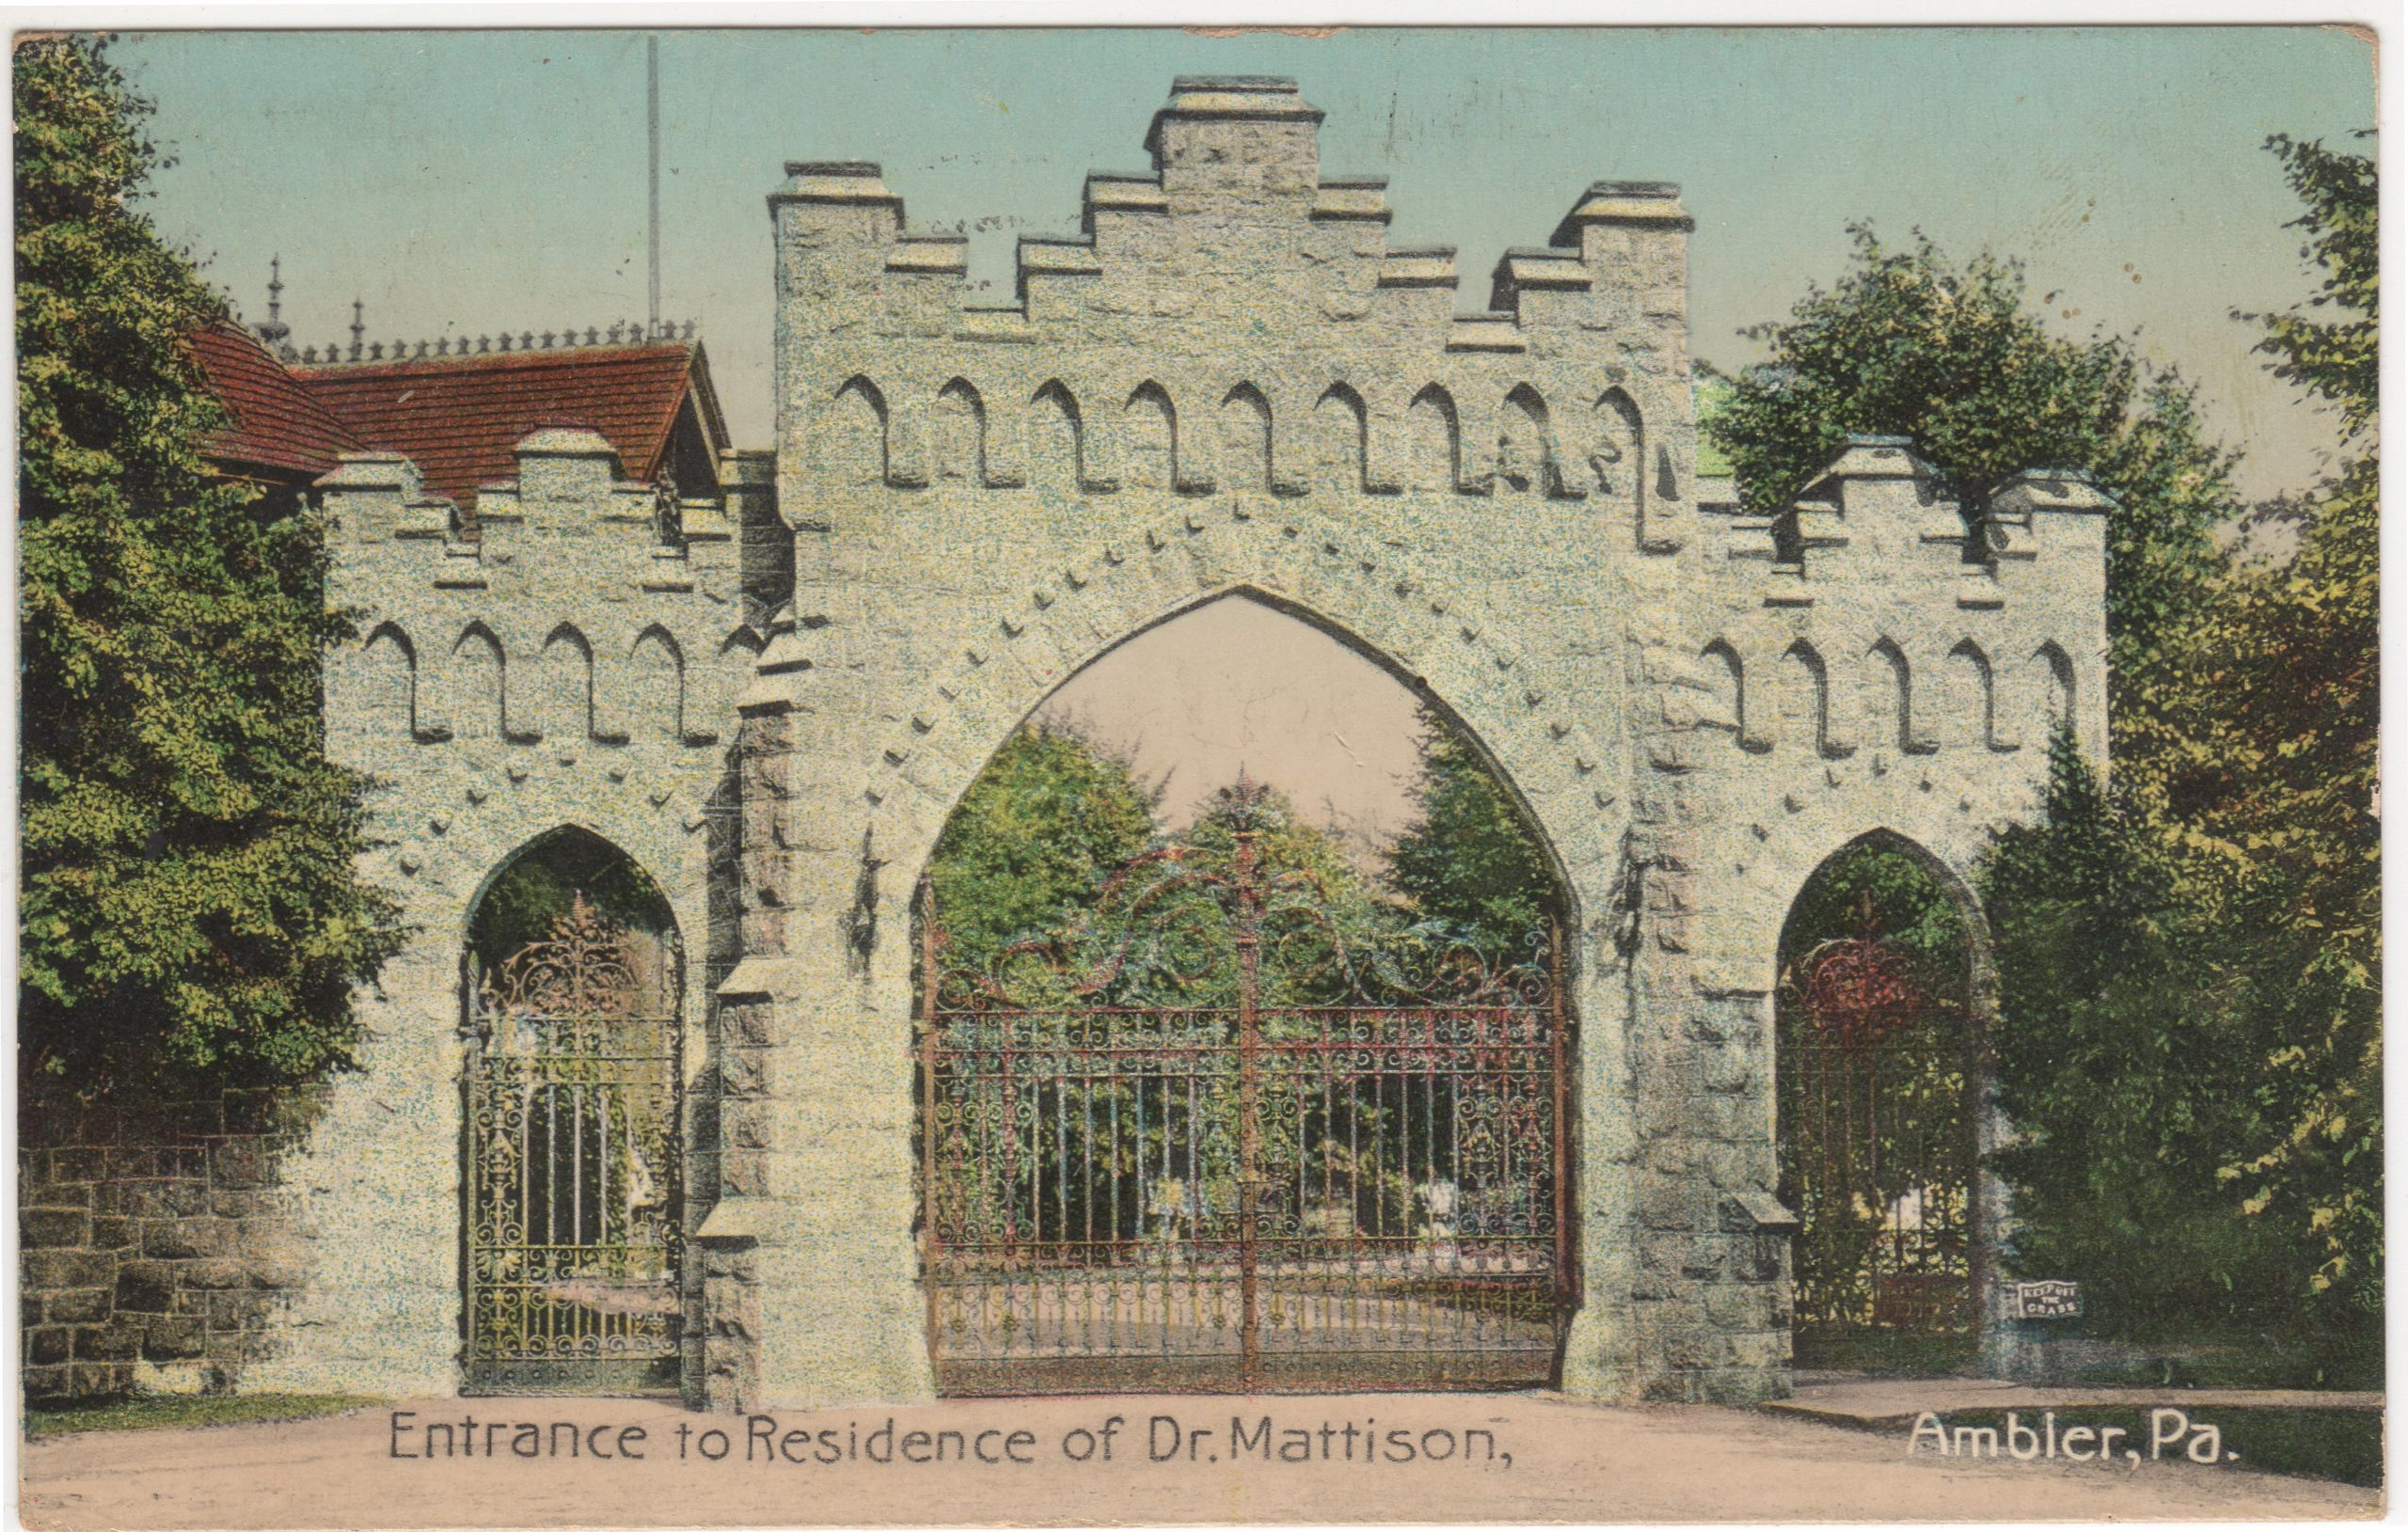 4125.95 Ambler Pa Postcard_Entrance to Residence of Dr Mattison_circa 1912